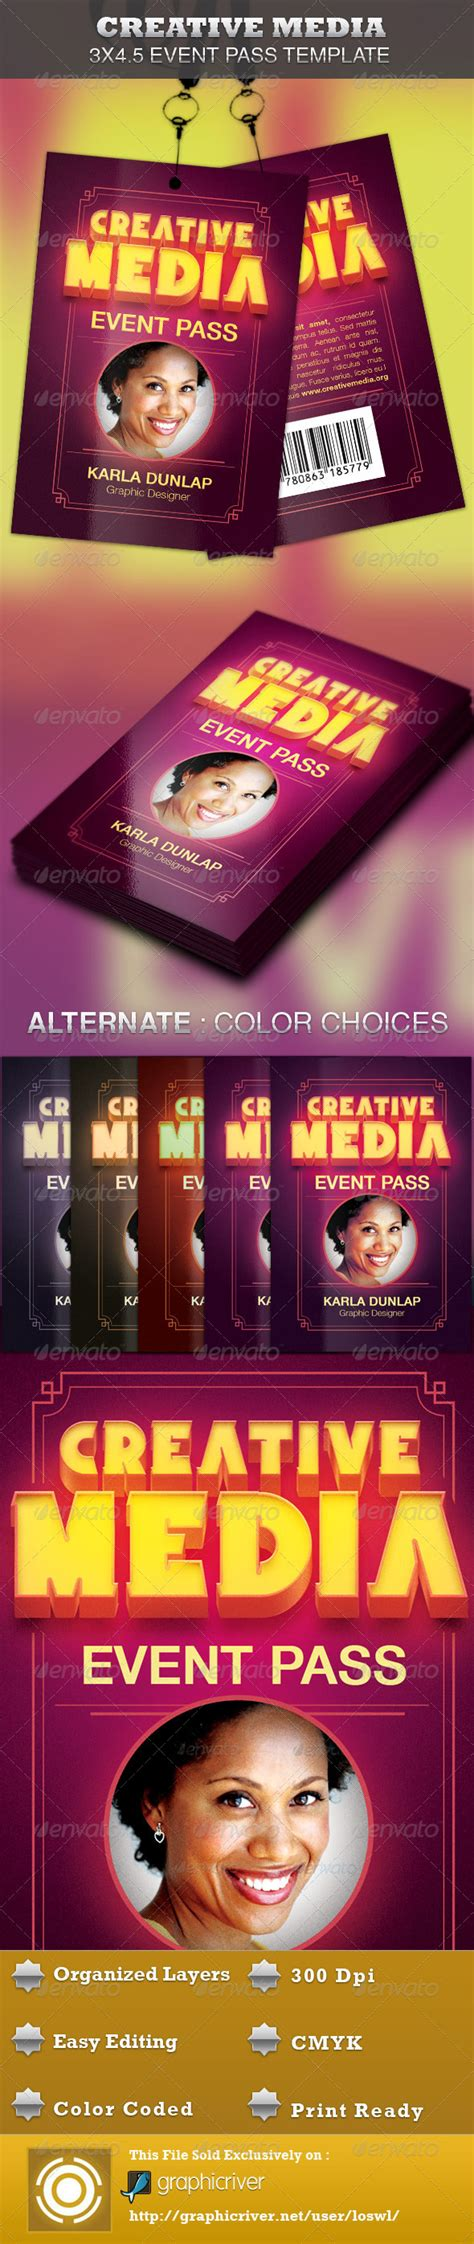 Creative Media Event Pass Template Graphicriver Media Pass Template Photoshop